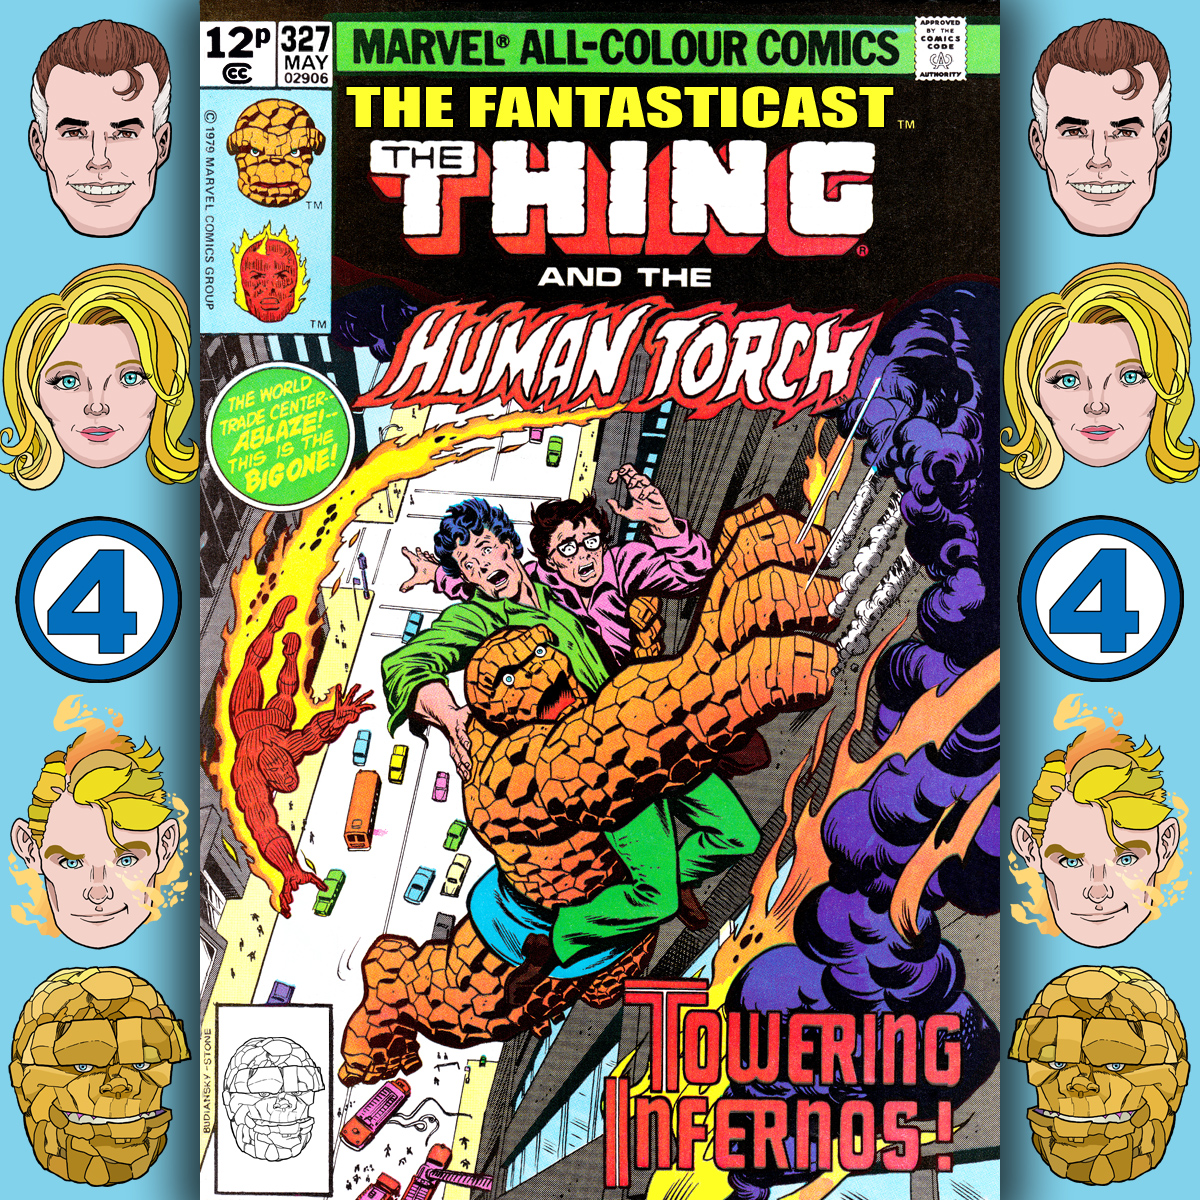 The Fantasticast Episode 327